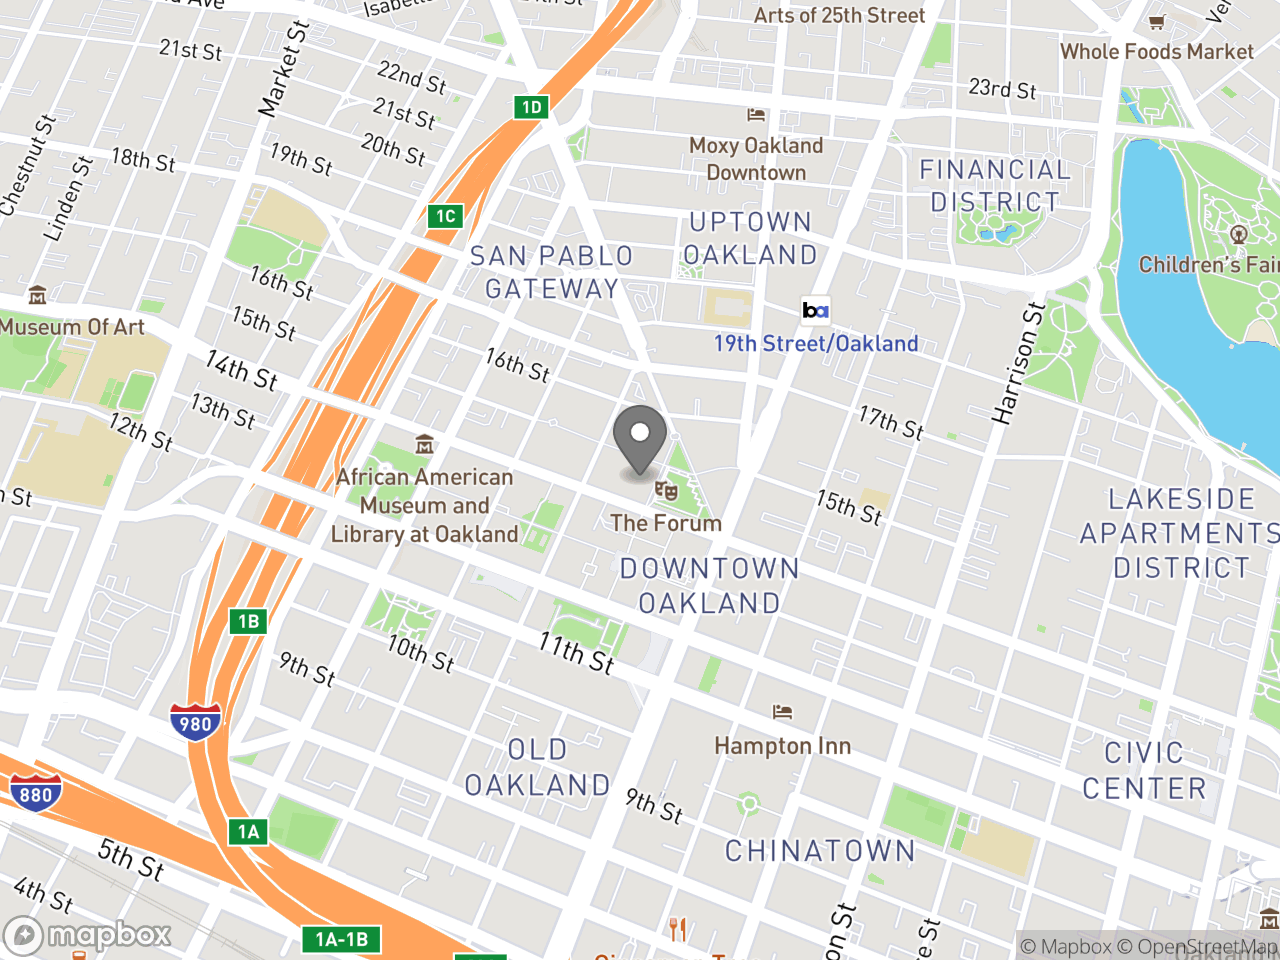 Map image for Rent Board Panel Meeting December 6, 2018, located at 1 Frank H. Ogawa Plaza in Oakland, CA 94612